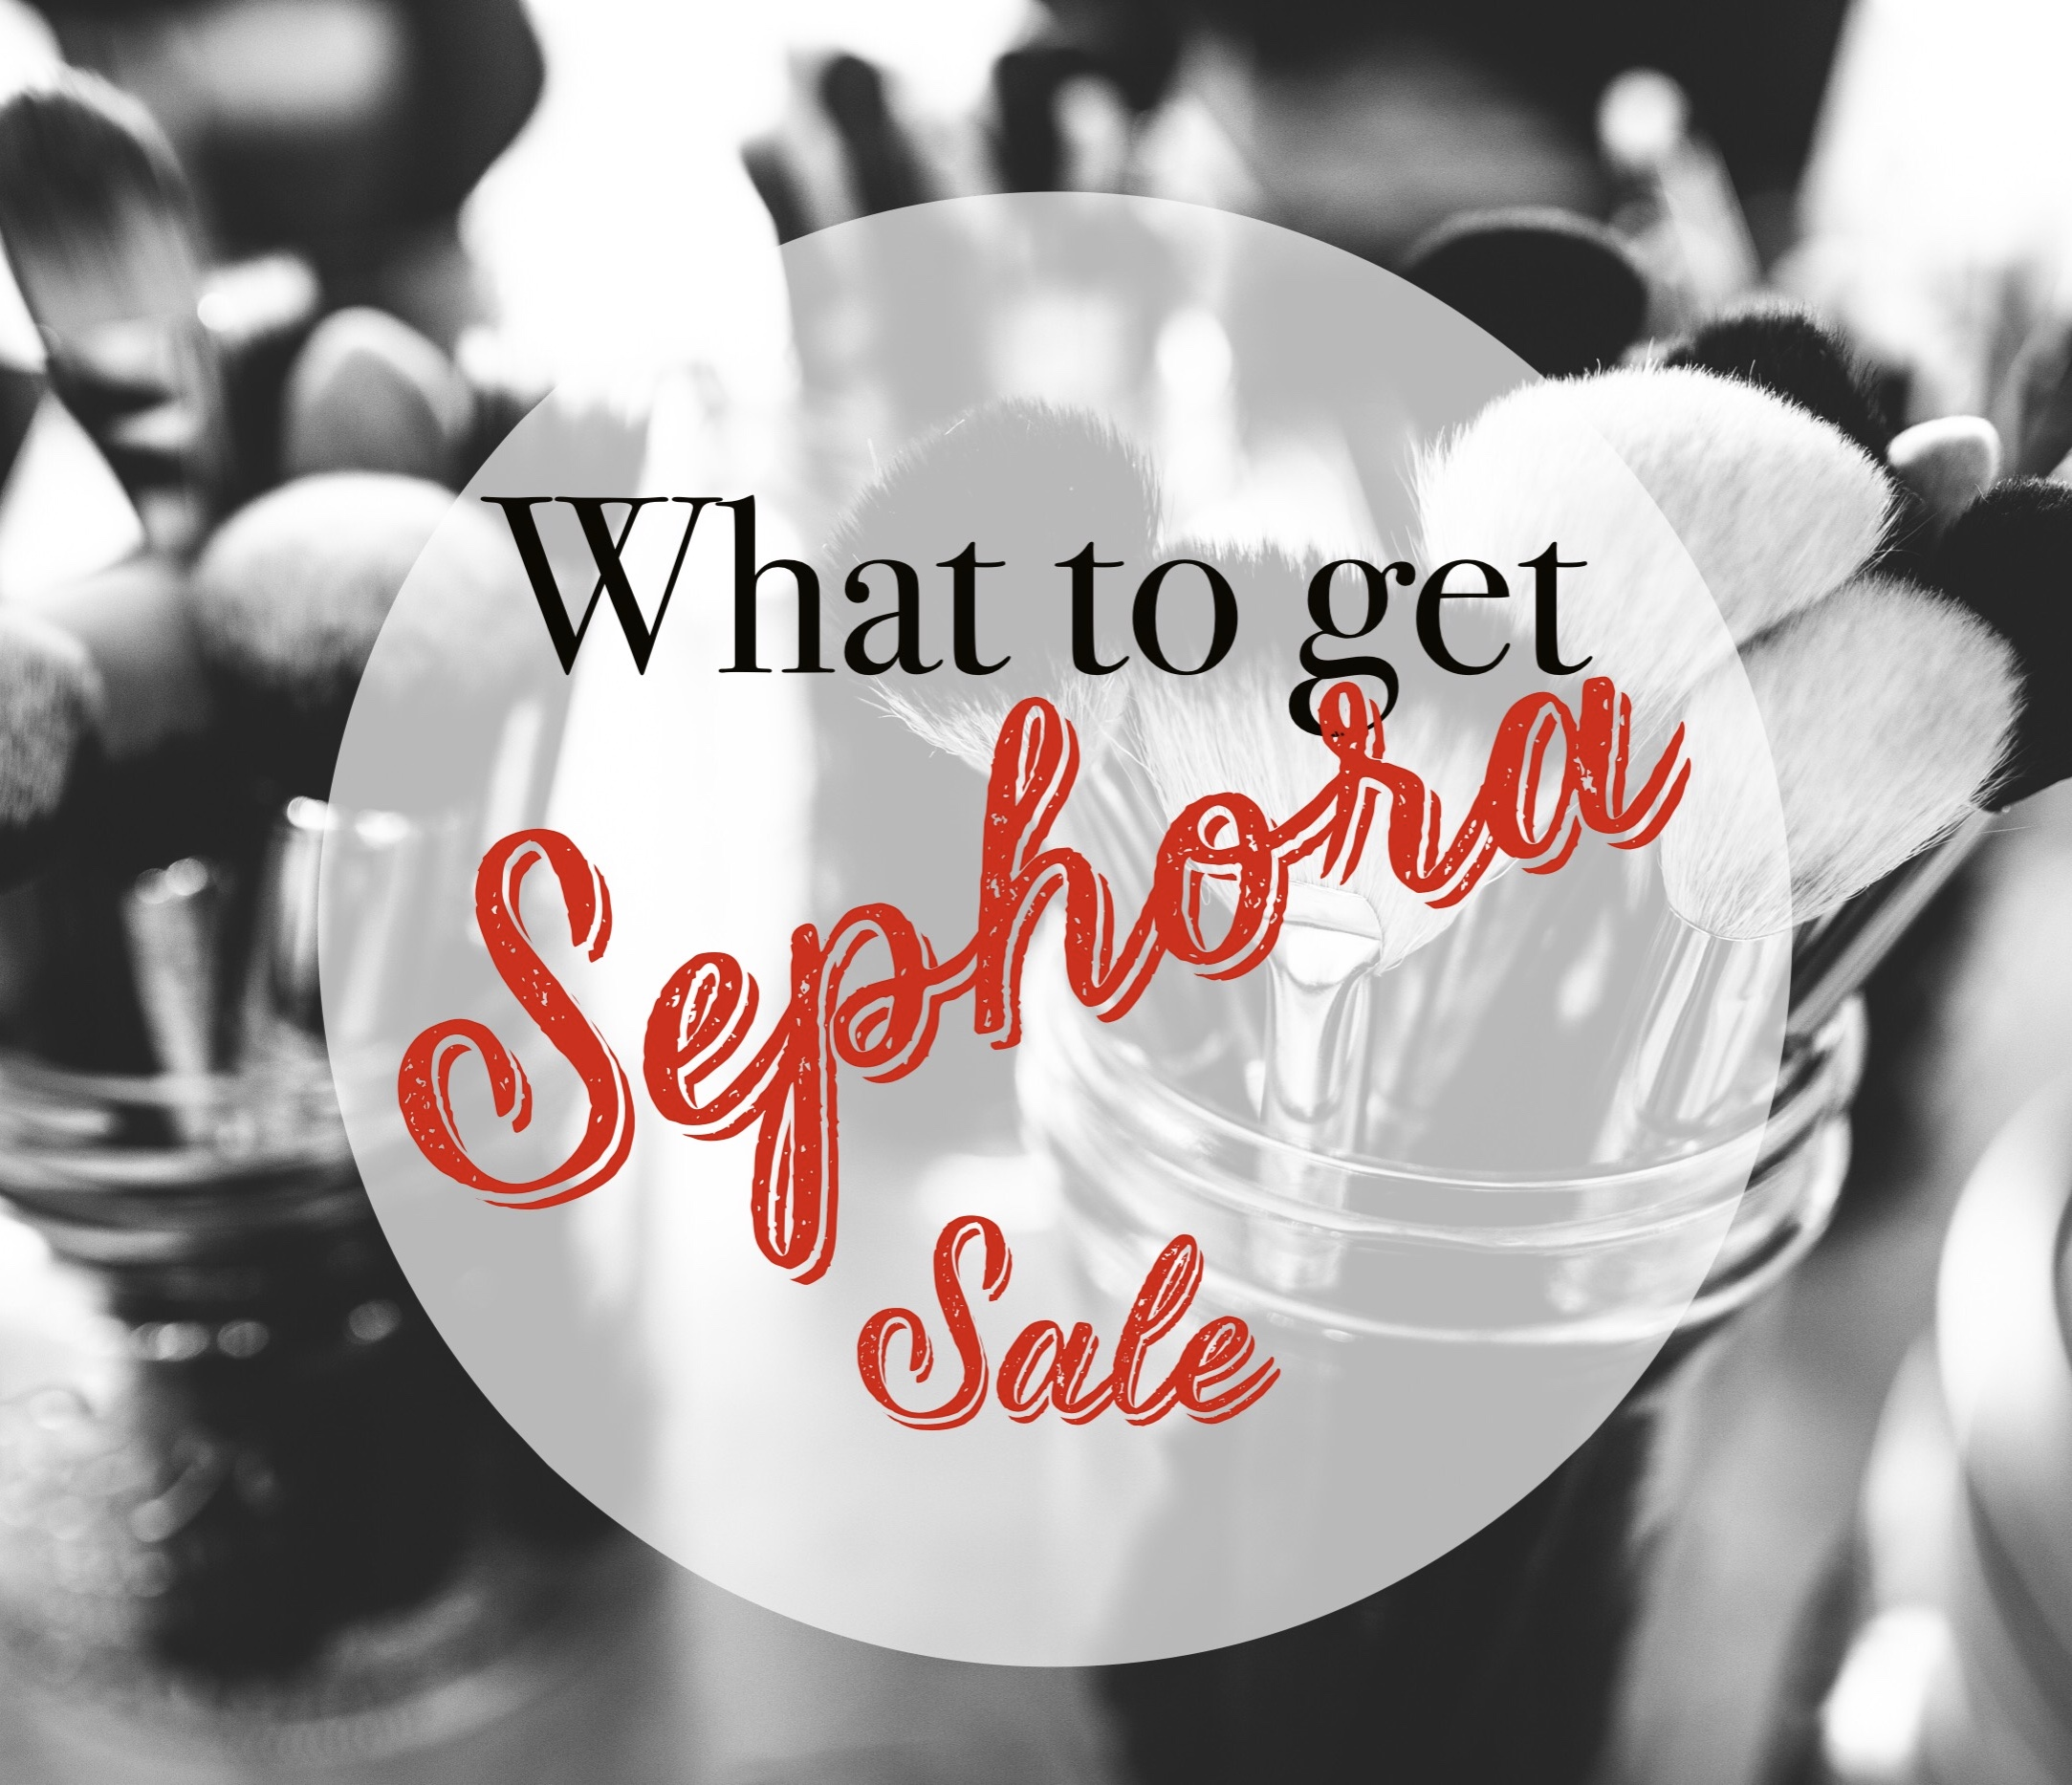 sephora sale 20% off vib, beauty insider rouge, what to buy in sephora holiday gift set ideas buy shop makeup